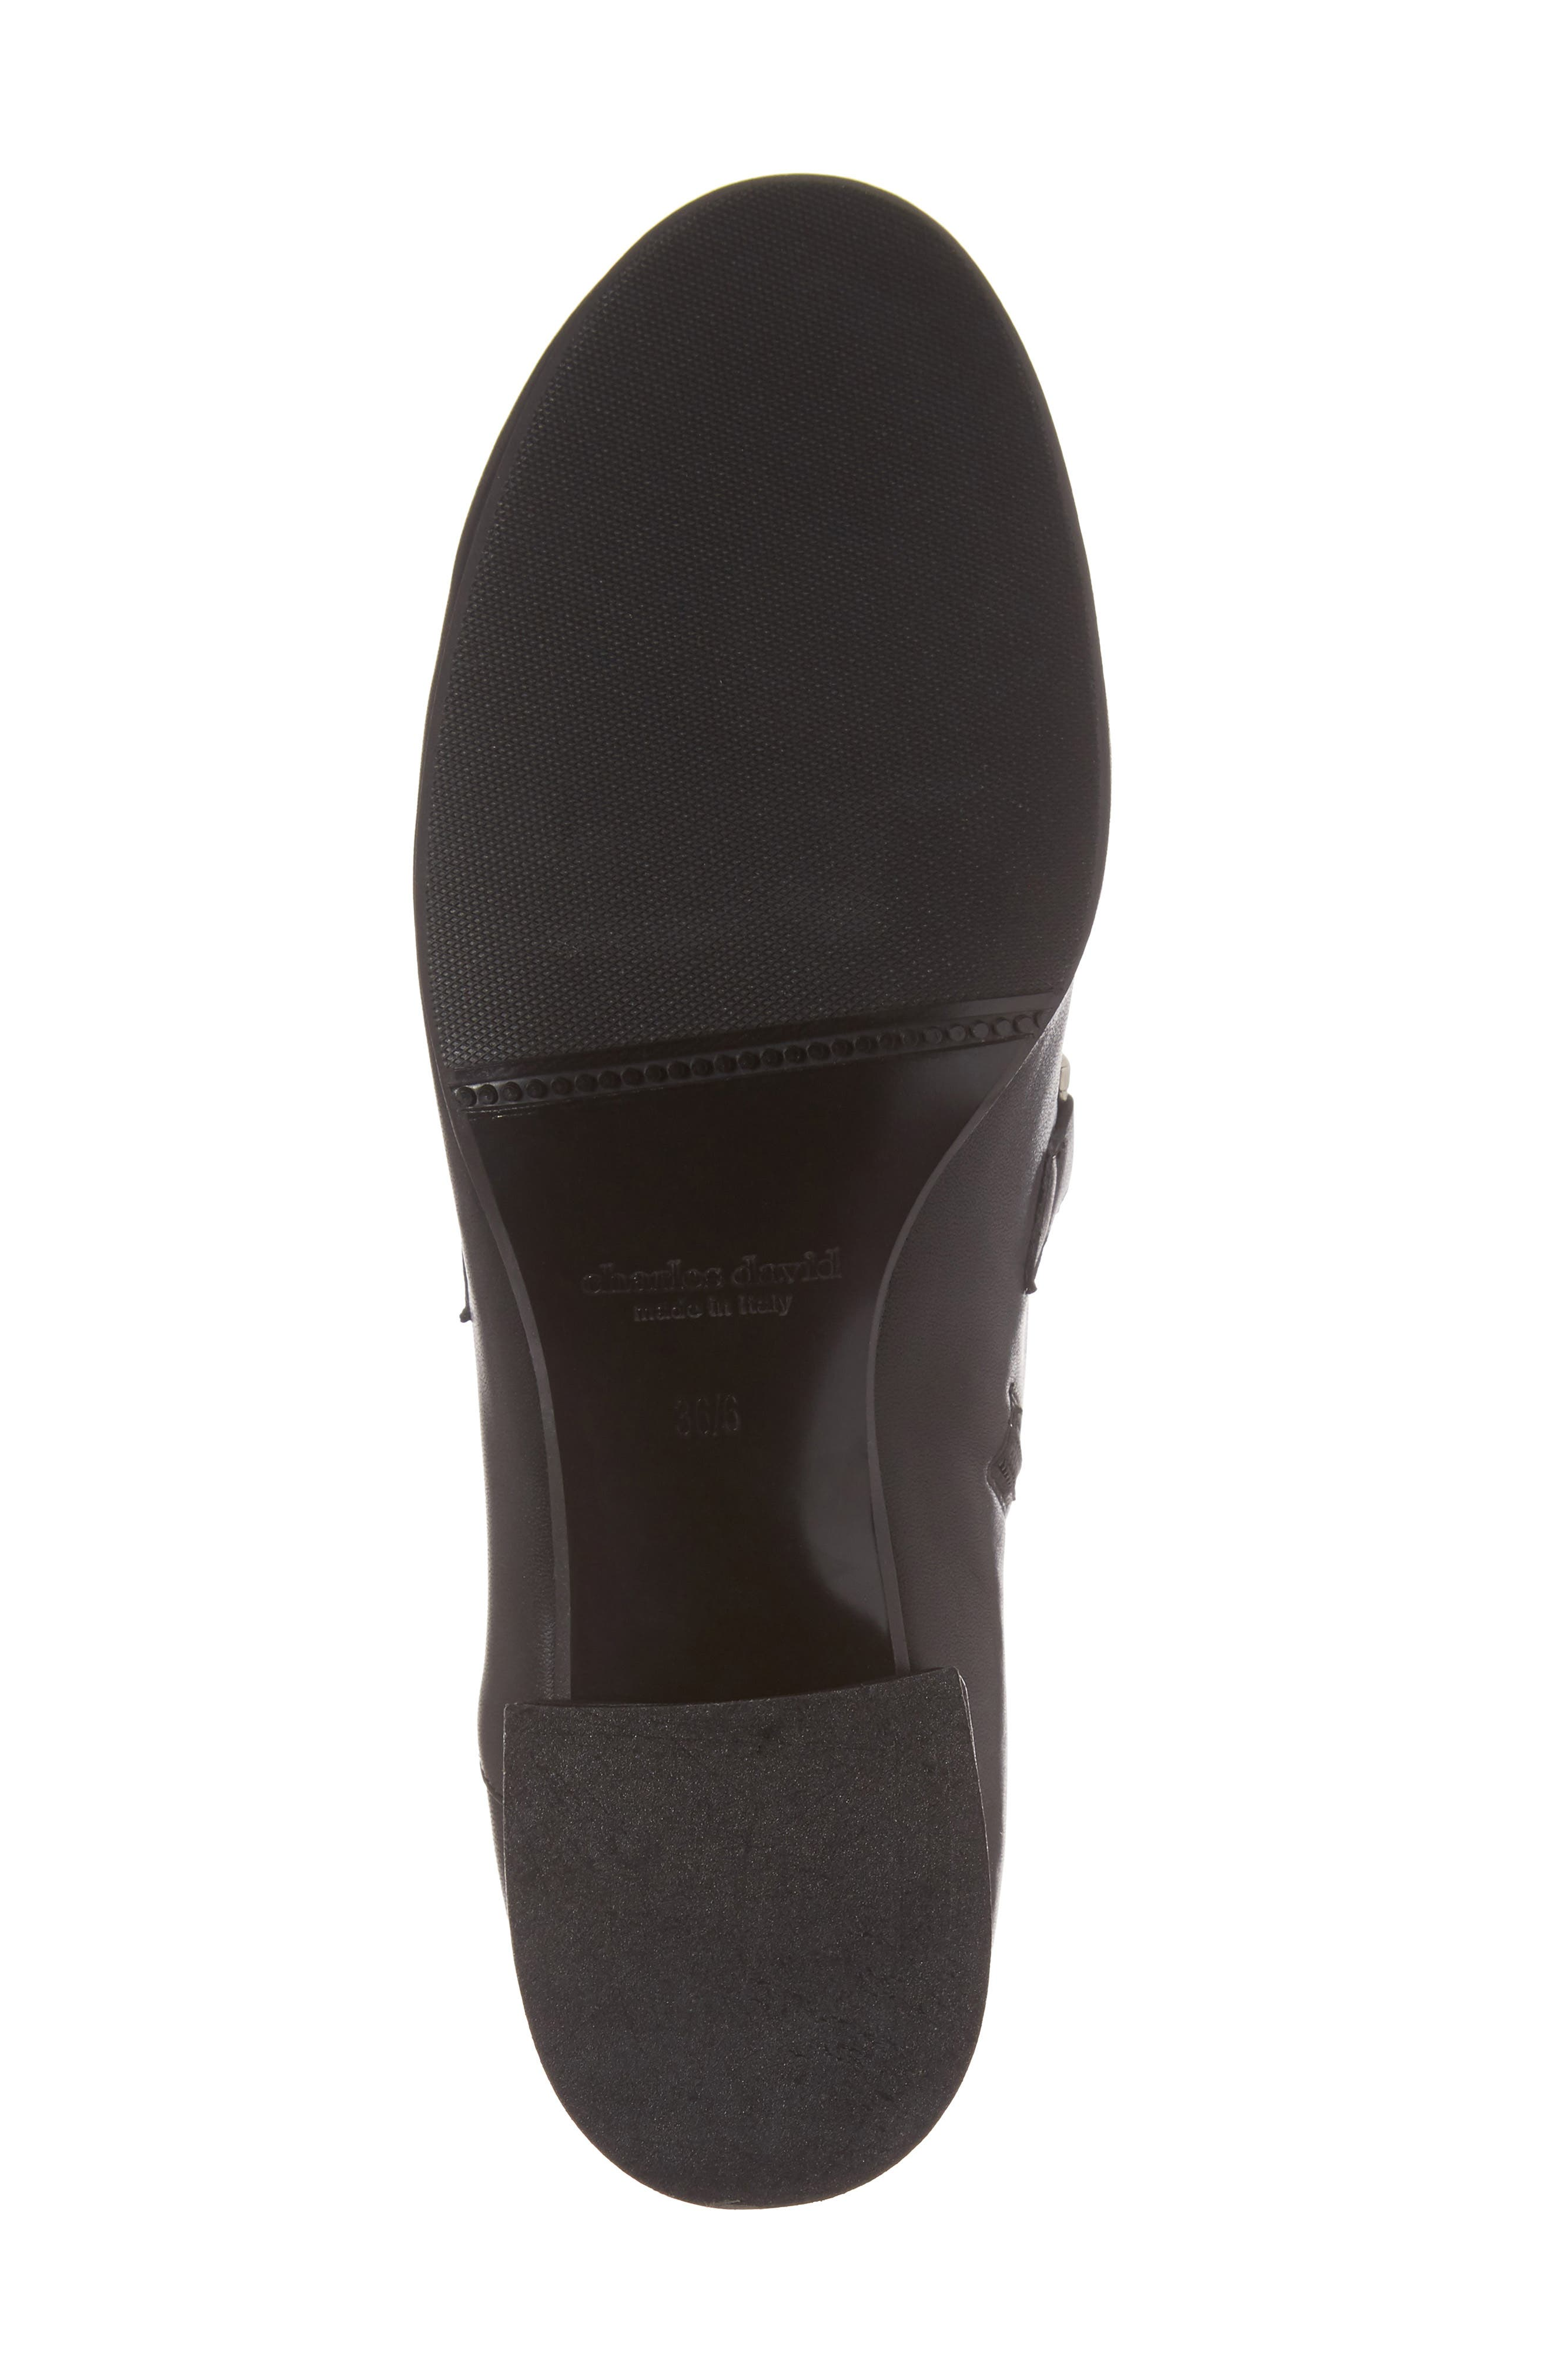 Mod Loafer Bootie,                             Alternate thumbnail 6, color,                             Black Stretch Leather